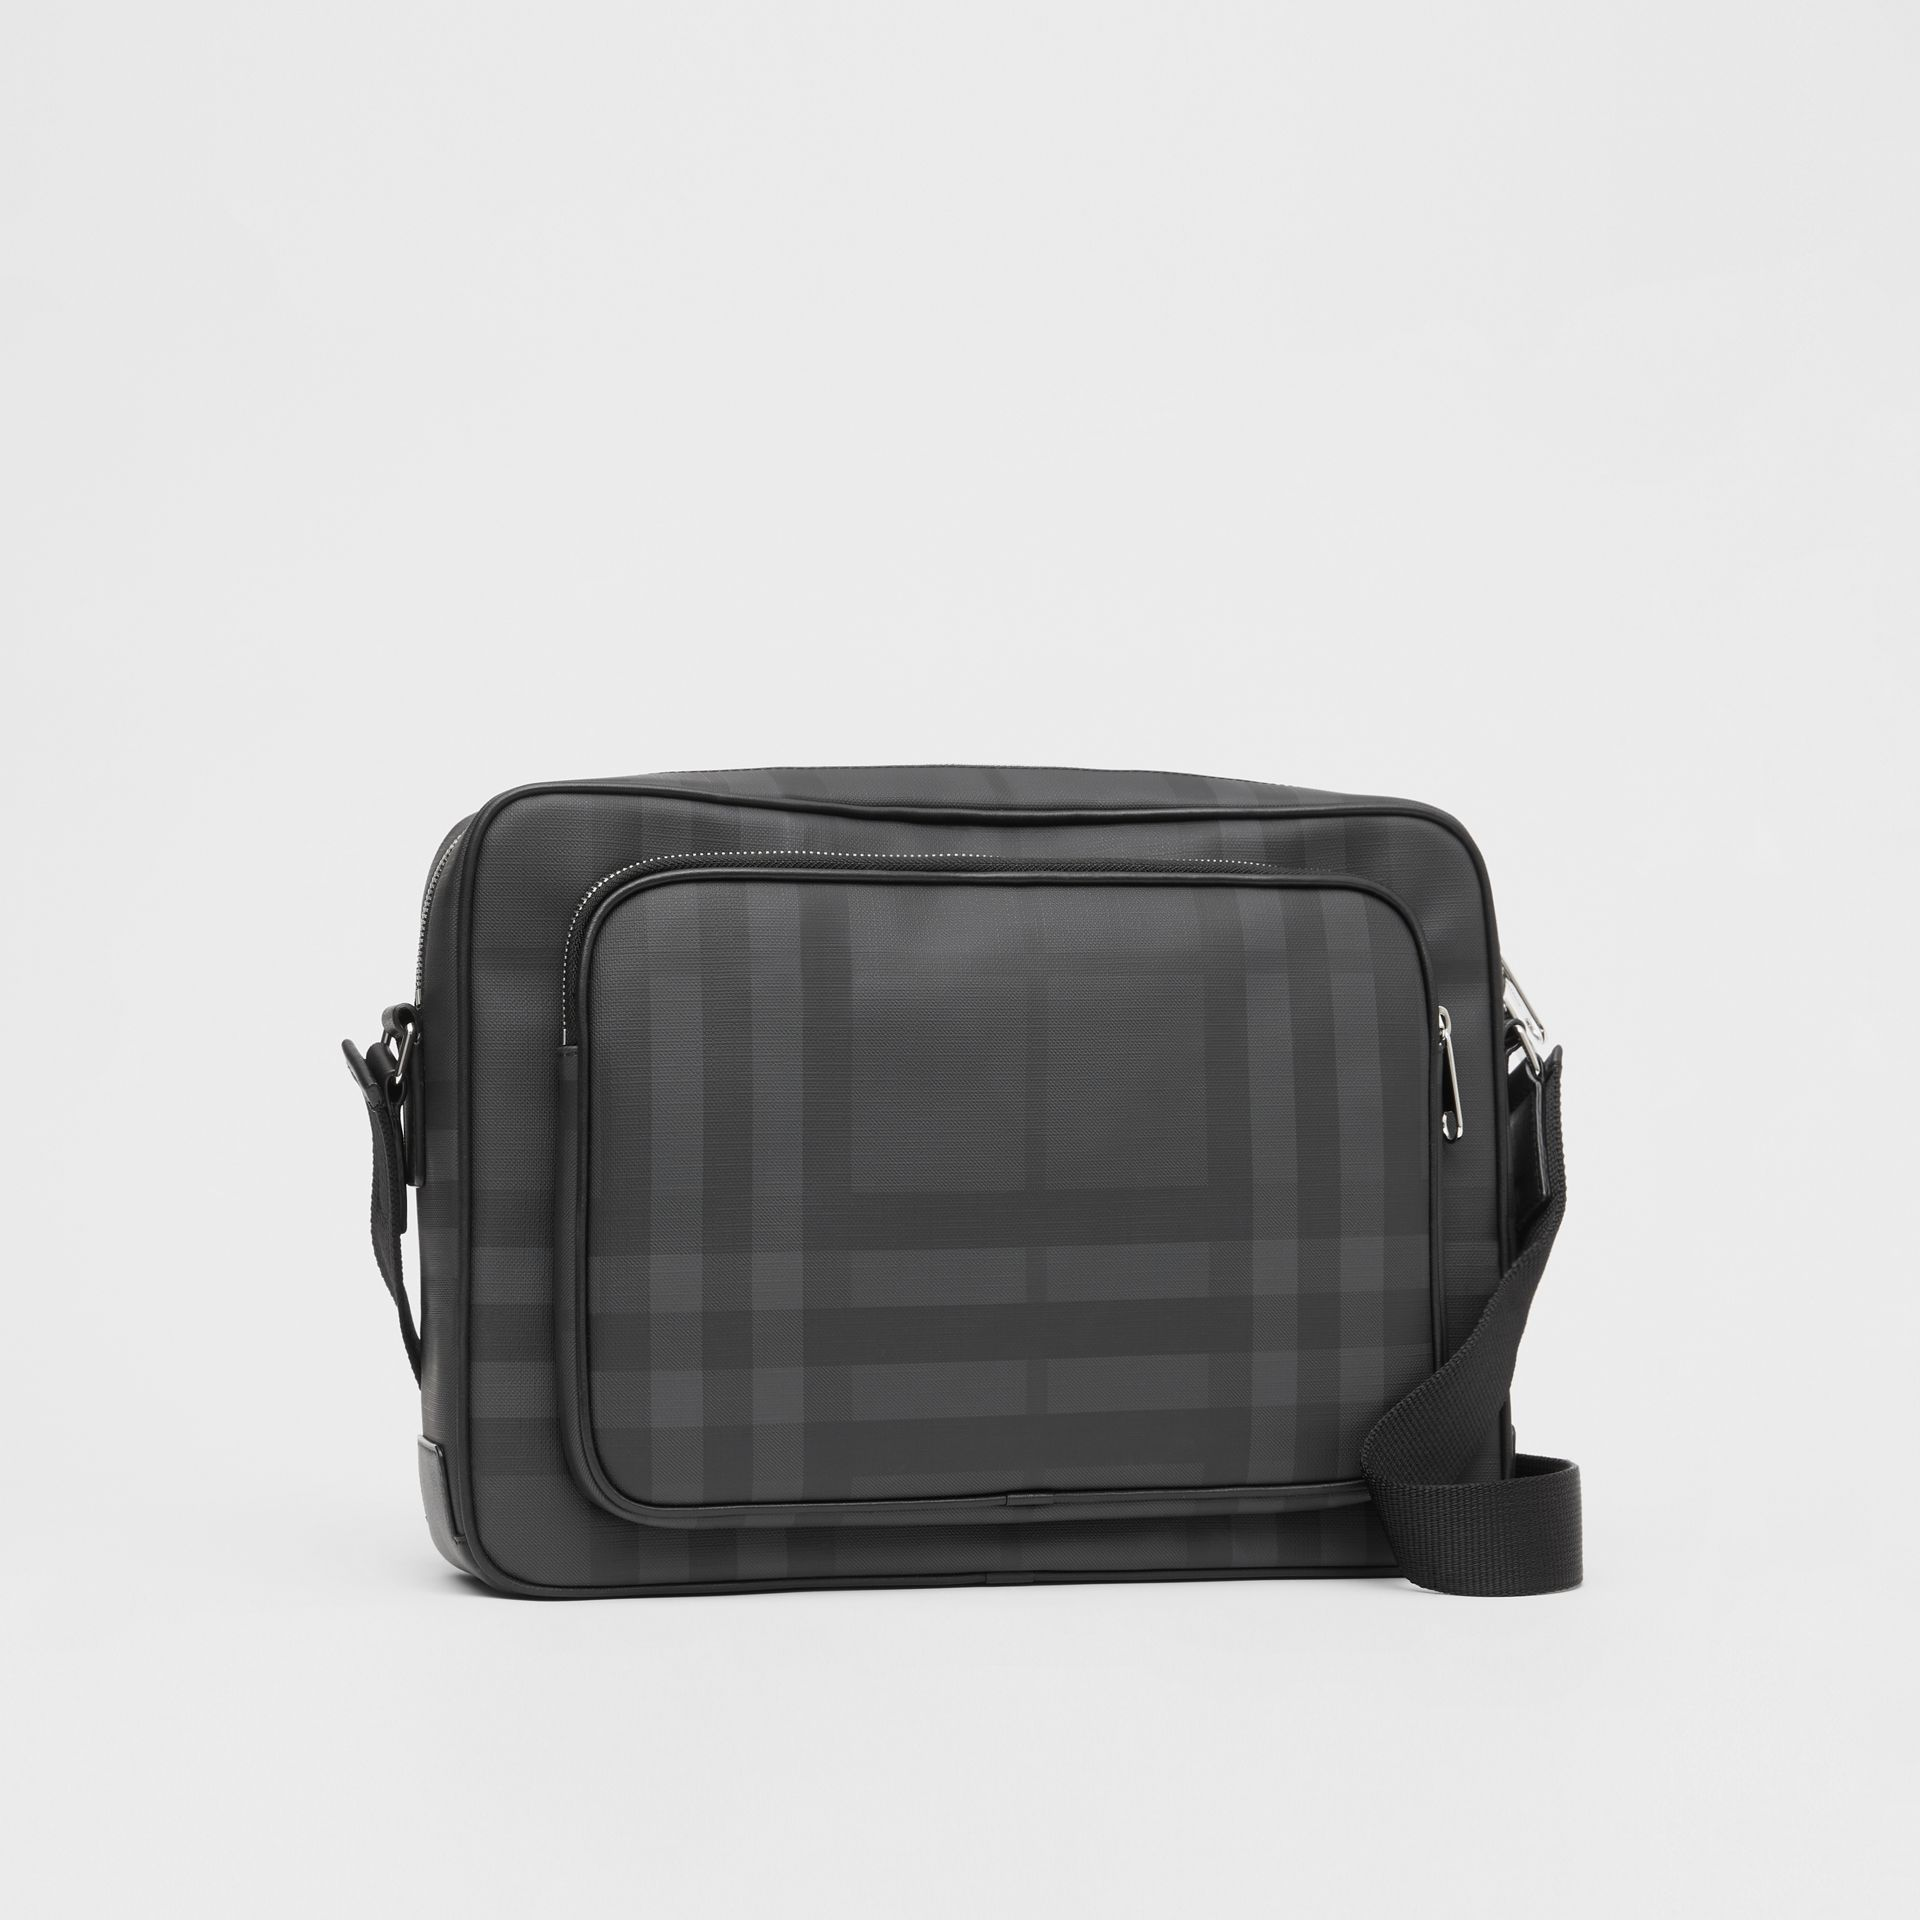 London Check and Leather Messenger Bag in Dark Charcoal - Men | Burberry United Kingdom - gallery image 6